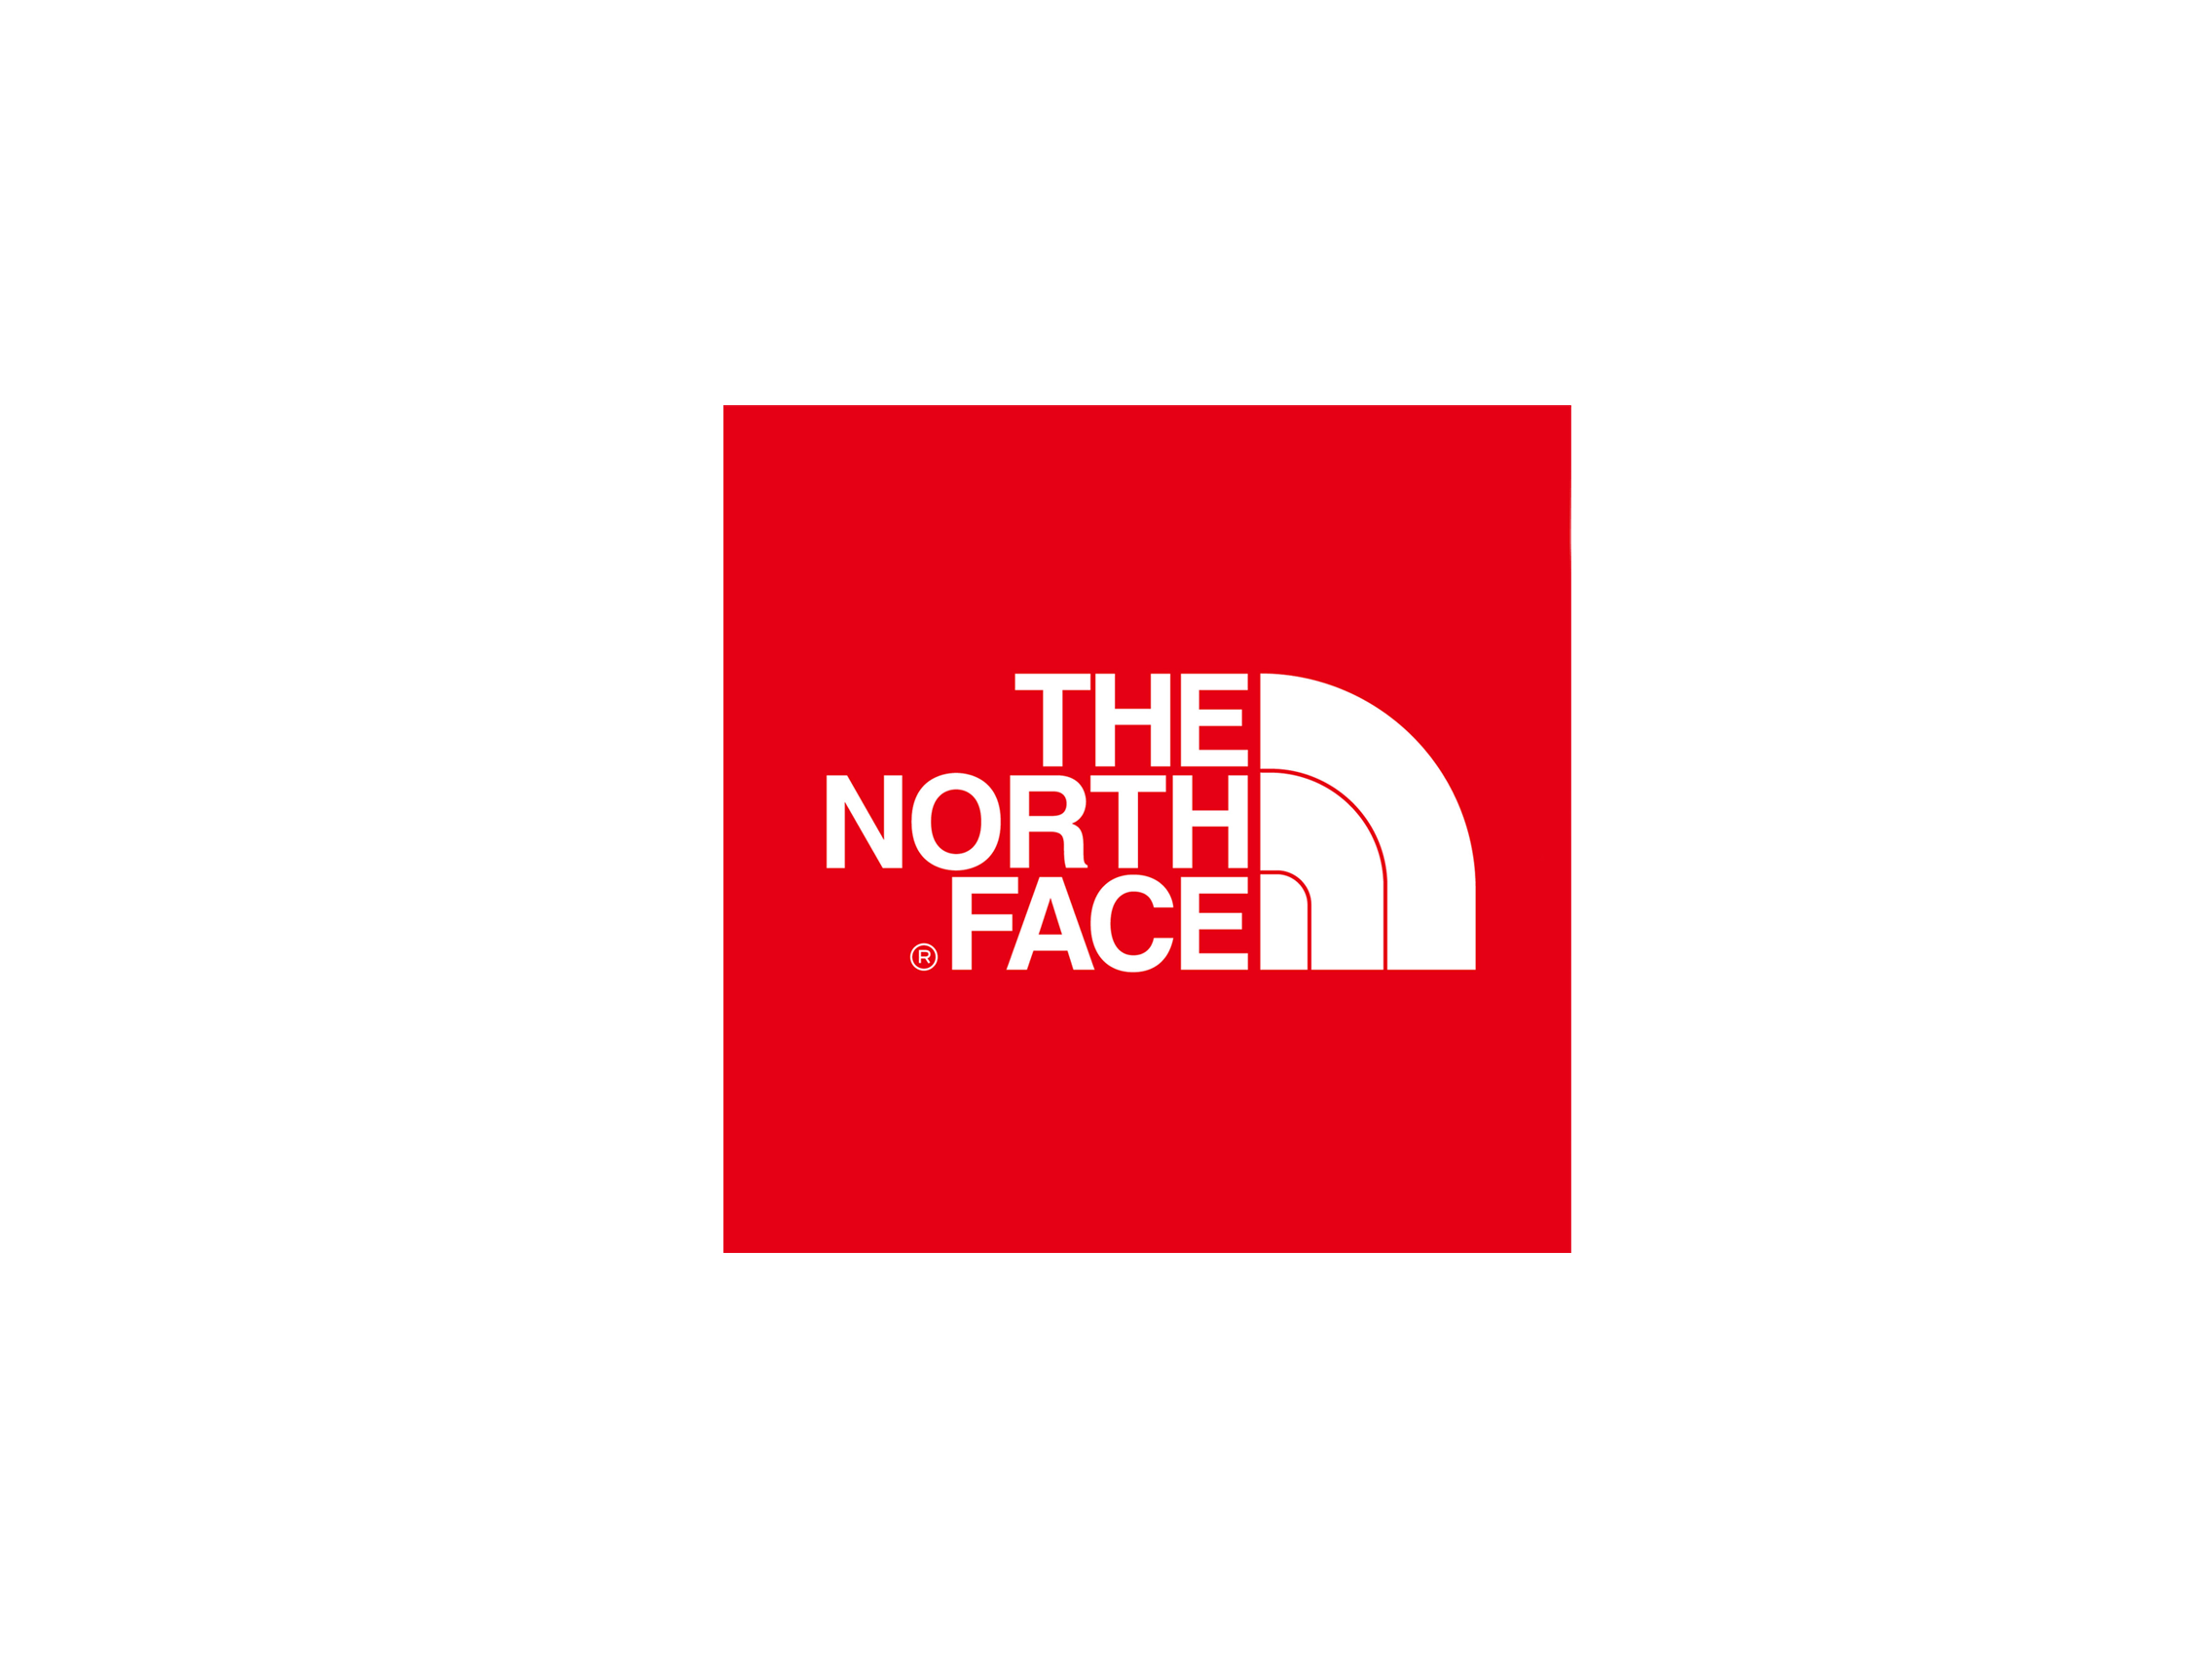 Face logo png. The north transparent stickpng